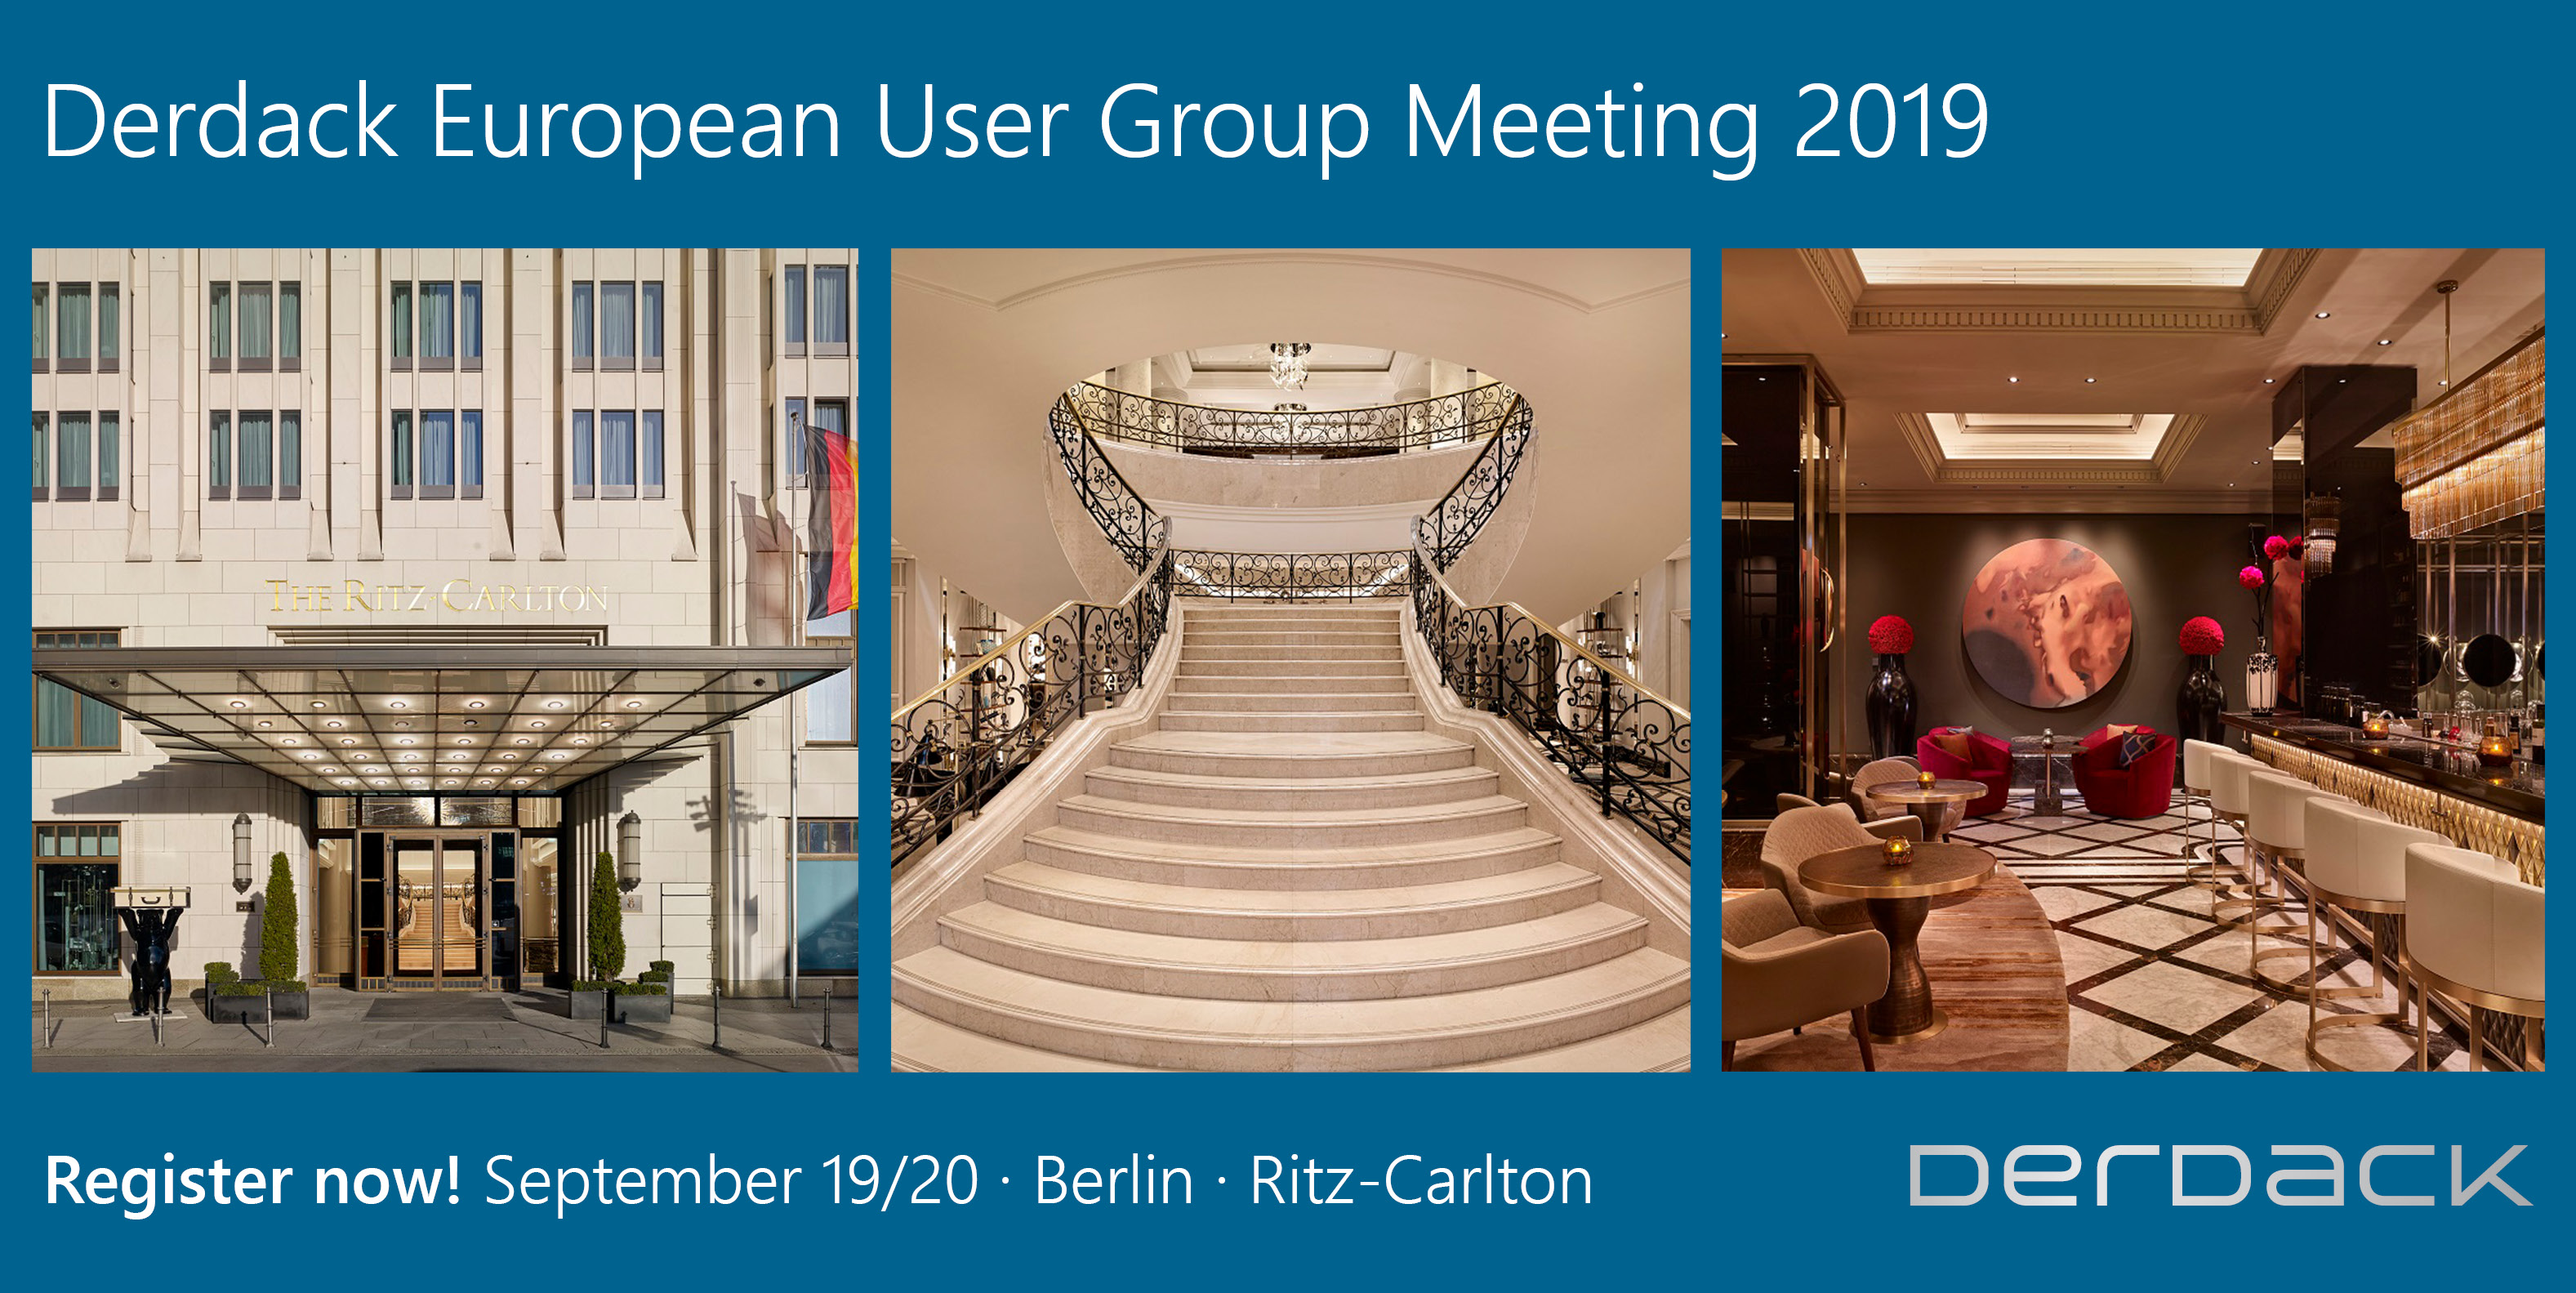 Derdack European User Group Meeting 2019 (DEUGM)